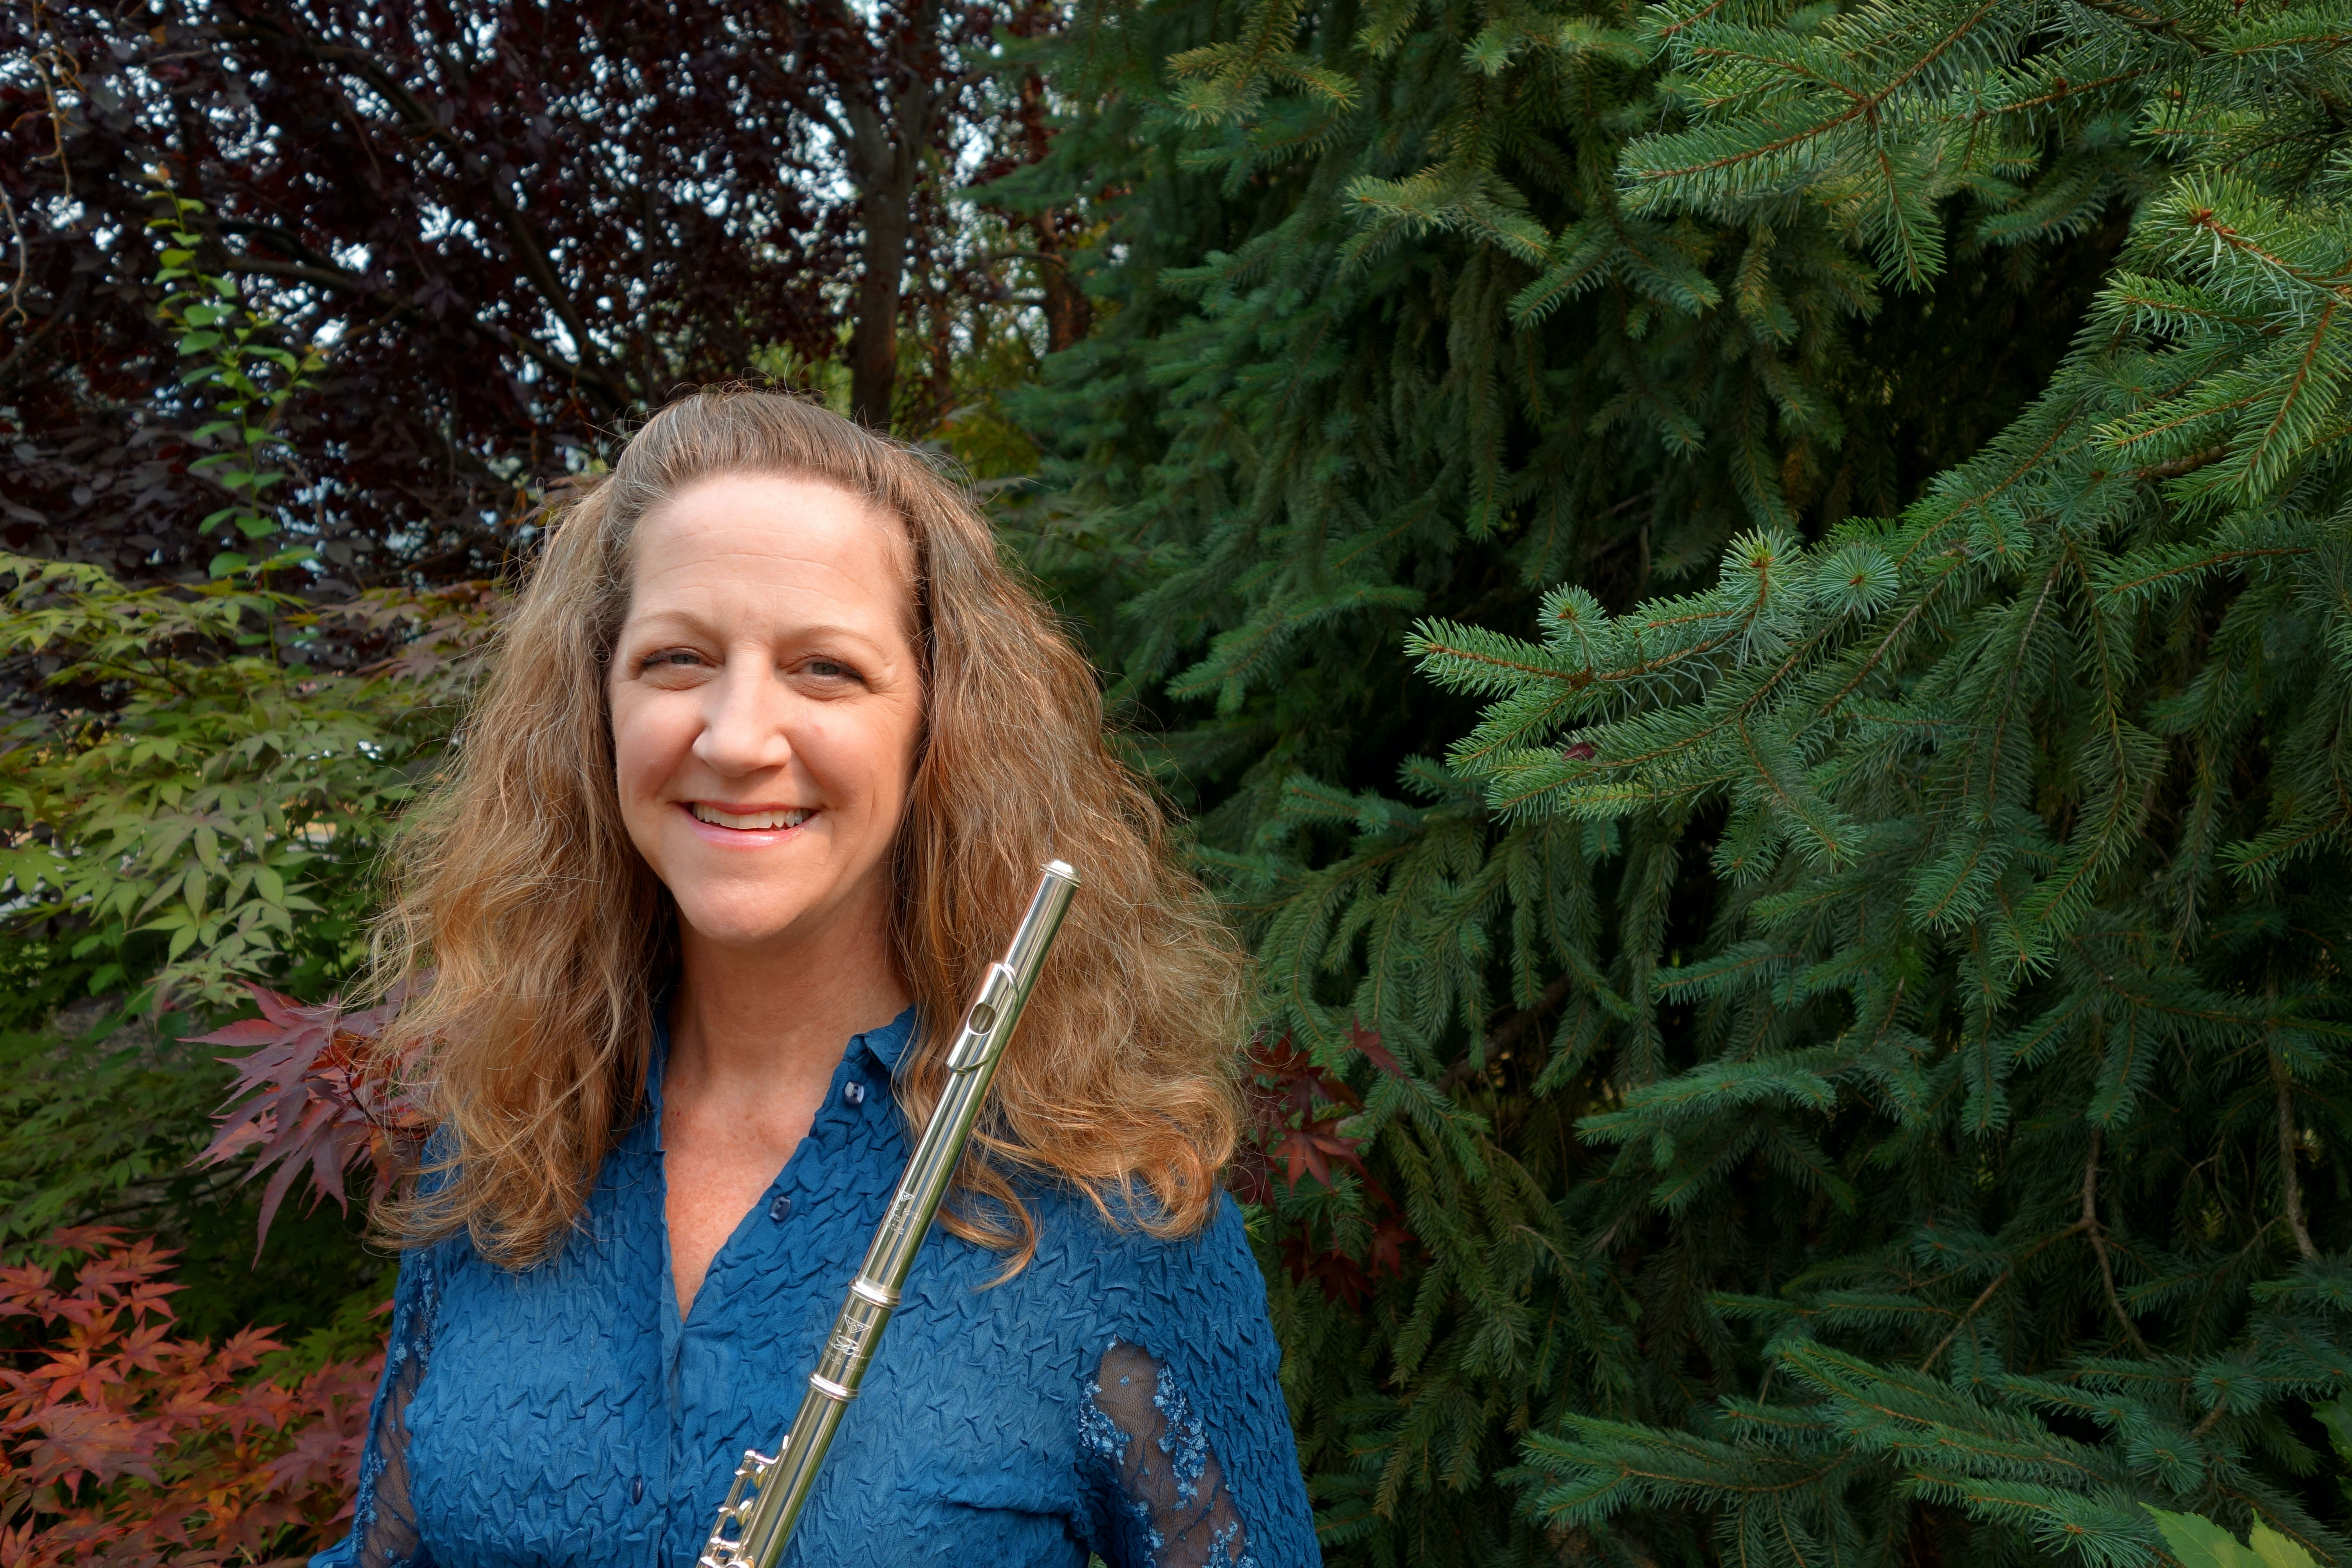 Kuow Why This Boeing Test Pilot Keeps A Flute In Her Toolbox